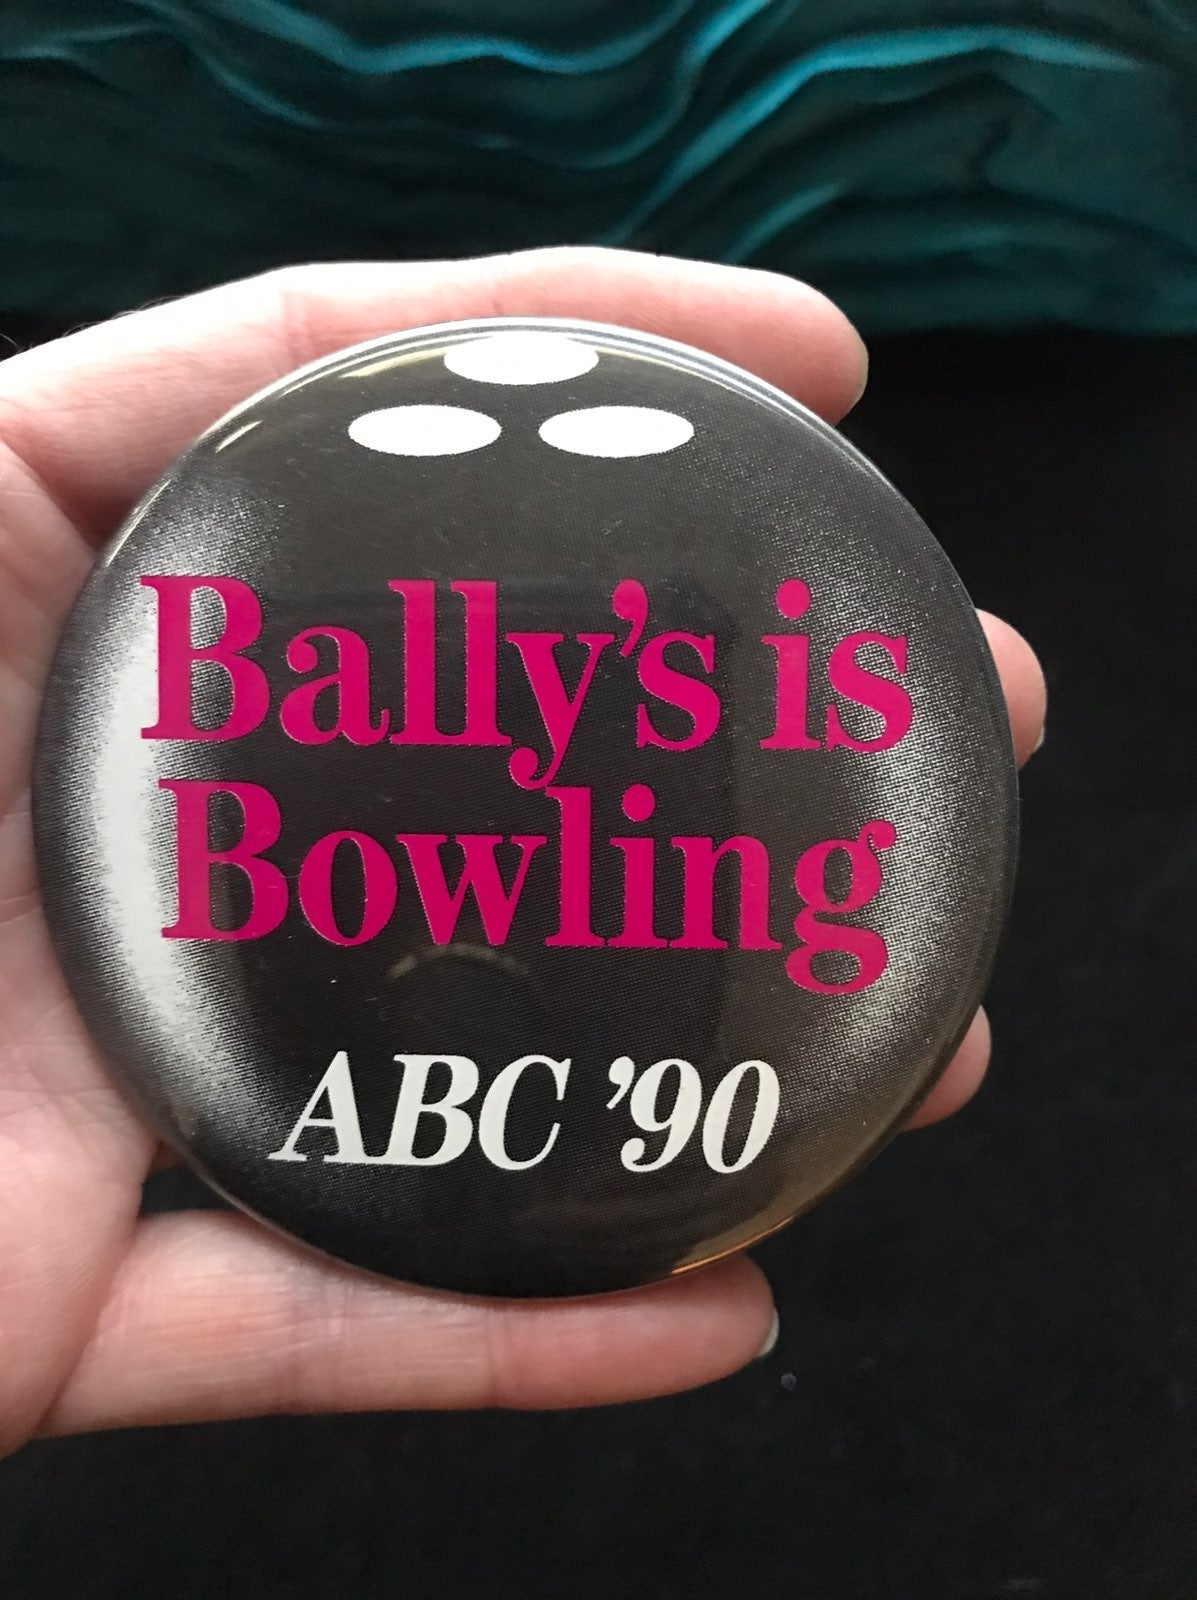 Bally's is bowling button/pin